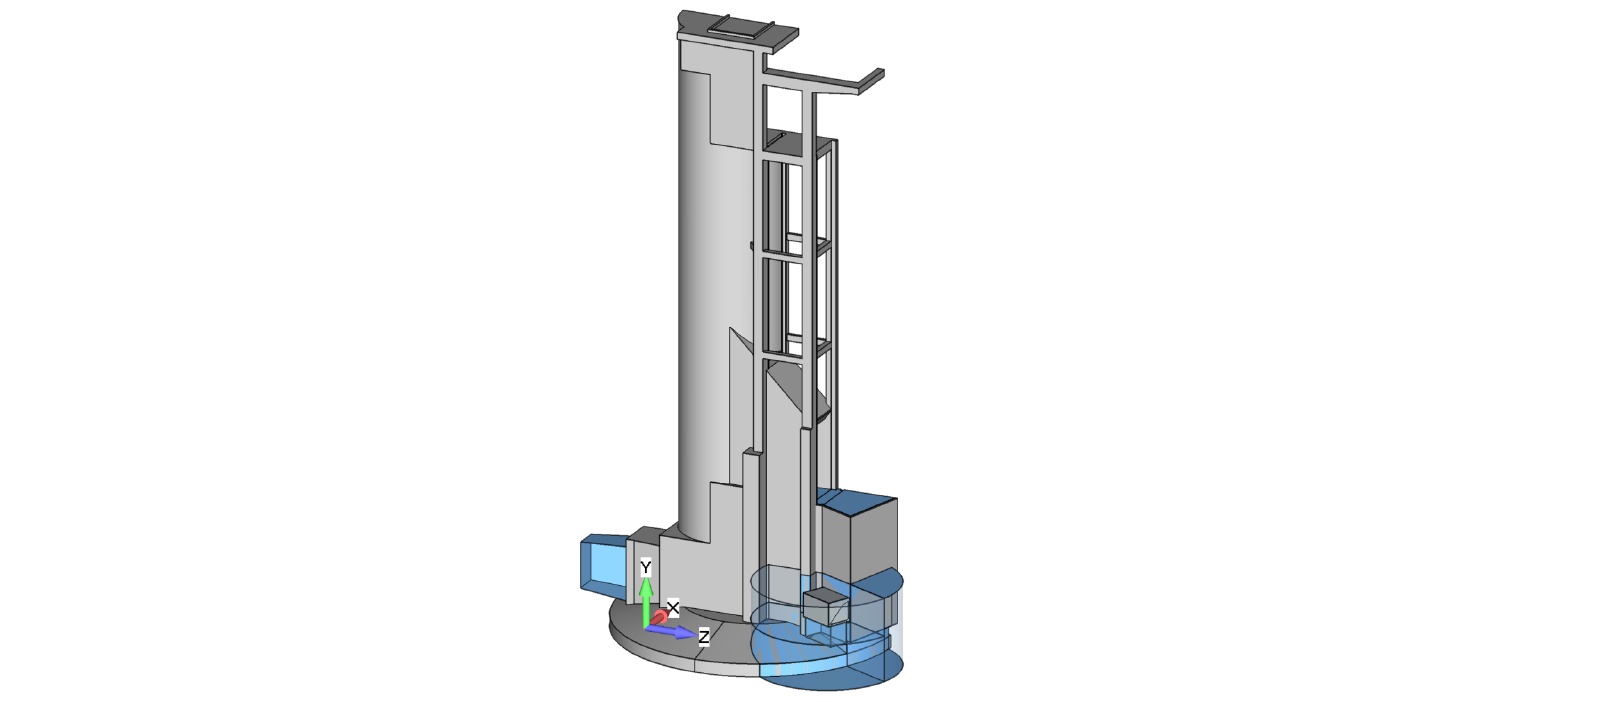 CFD idealized geometry of the dewatering system with relief gate.